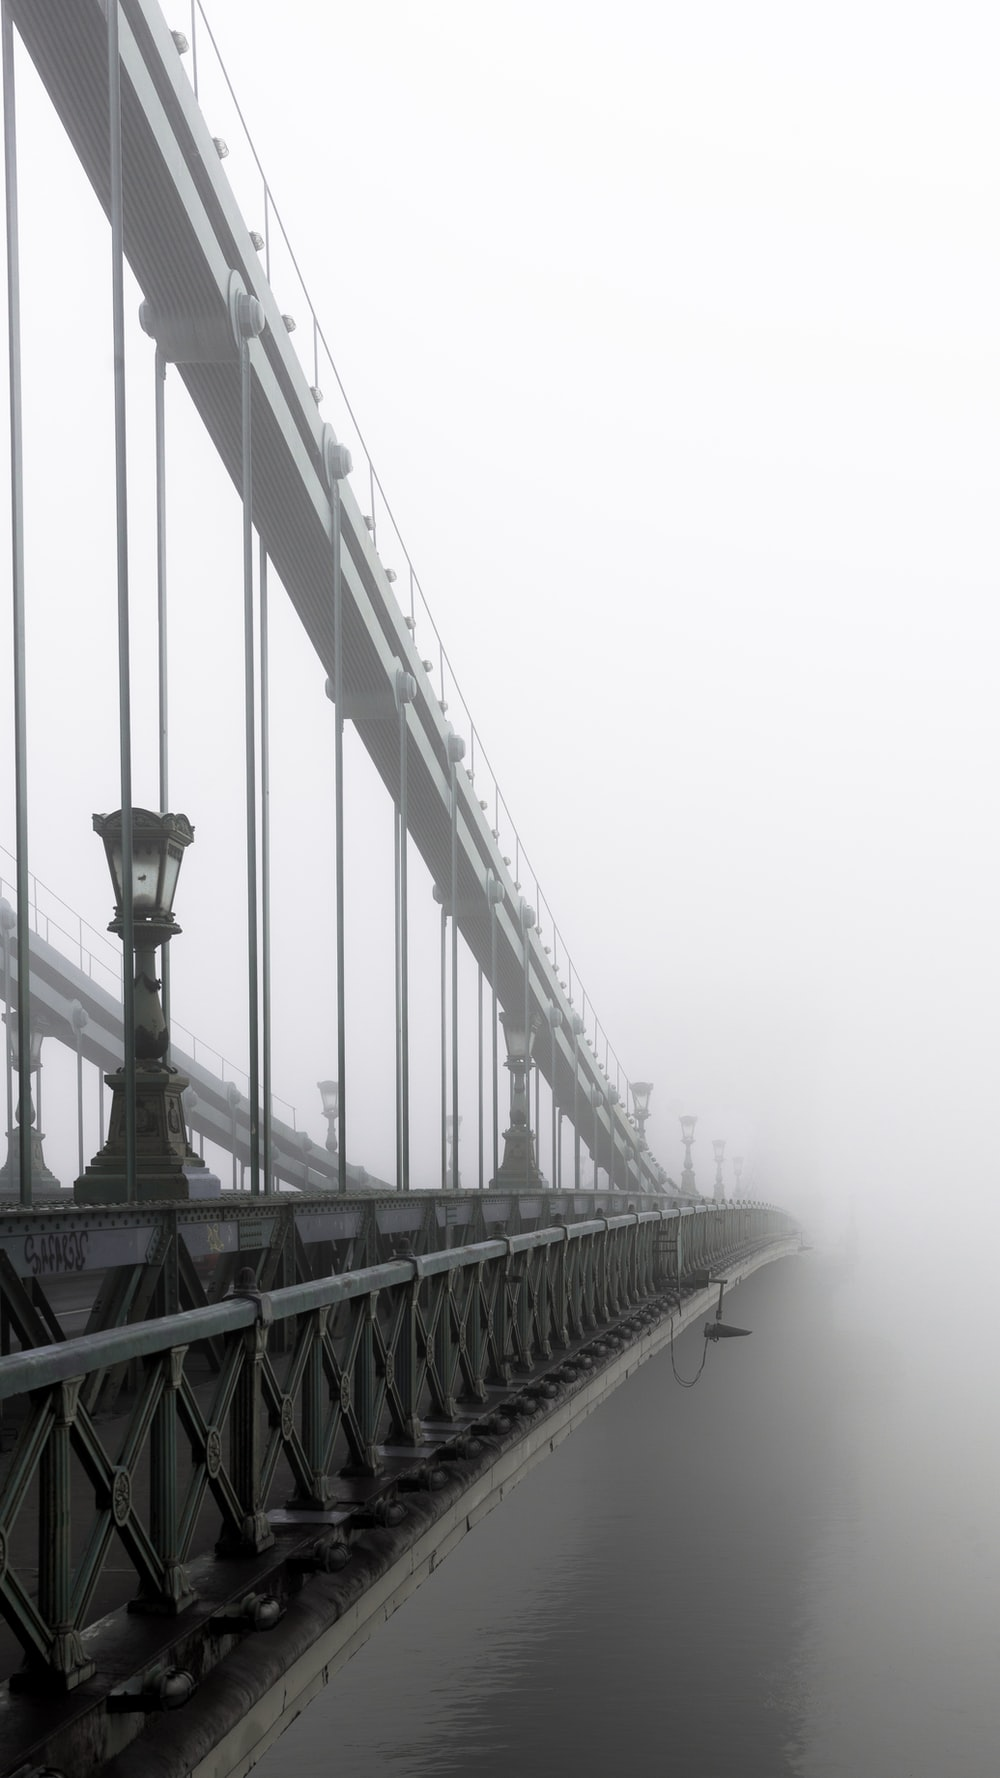 closeup photo of bridge and mist